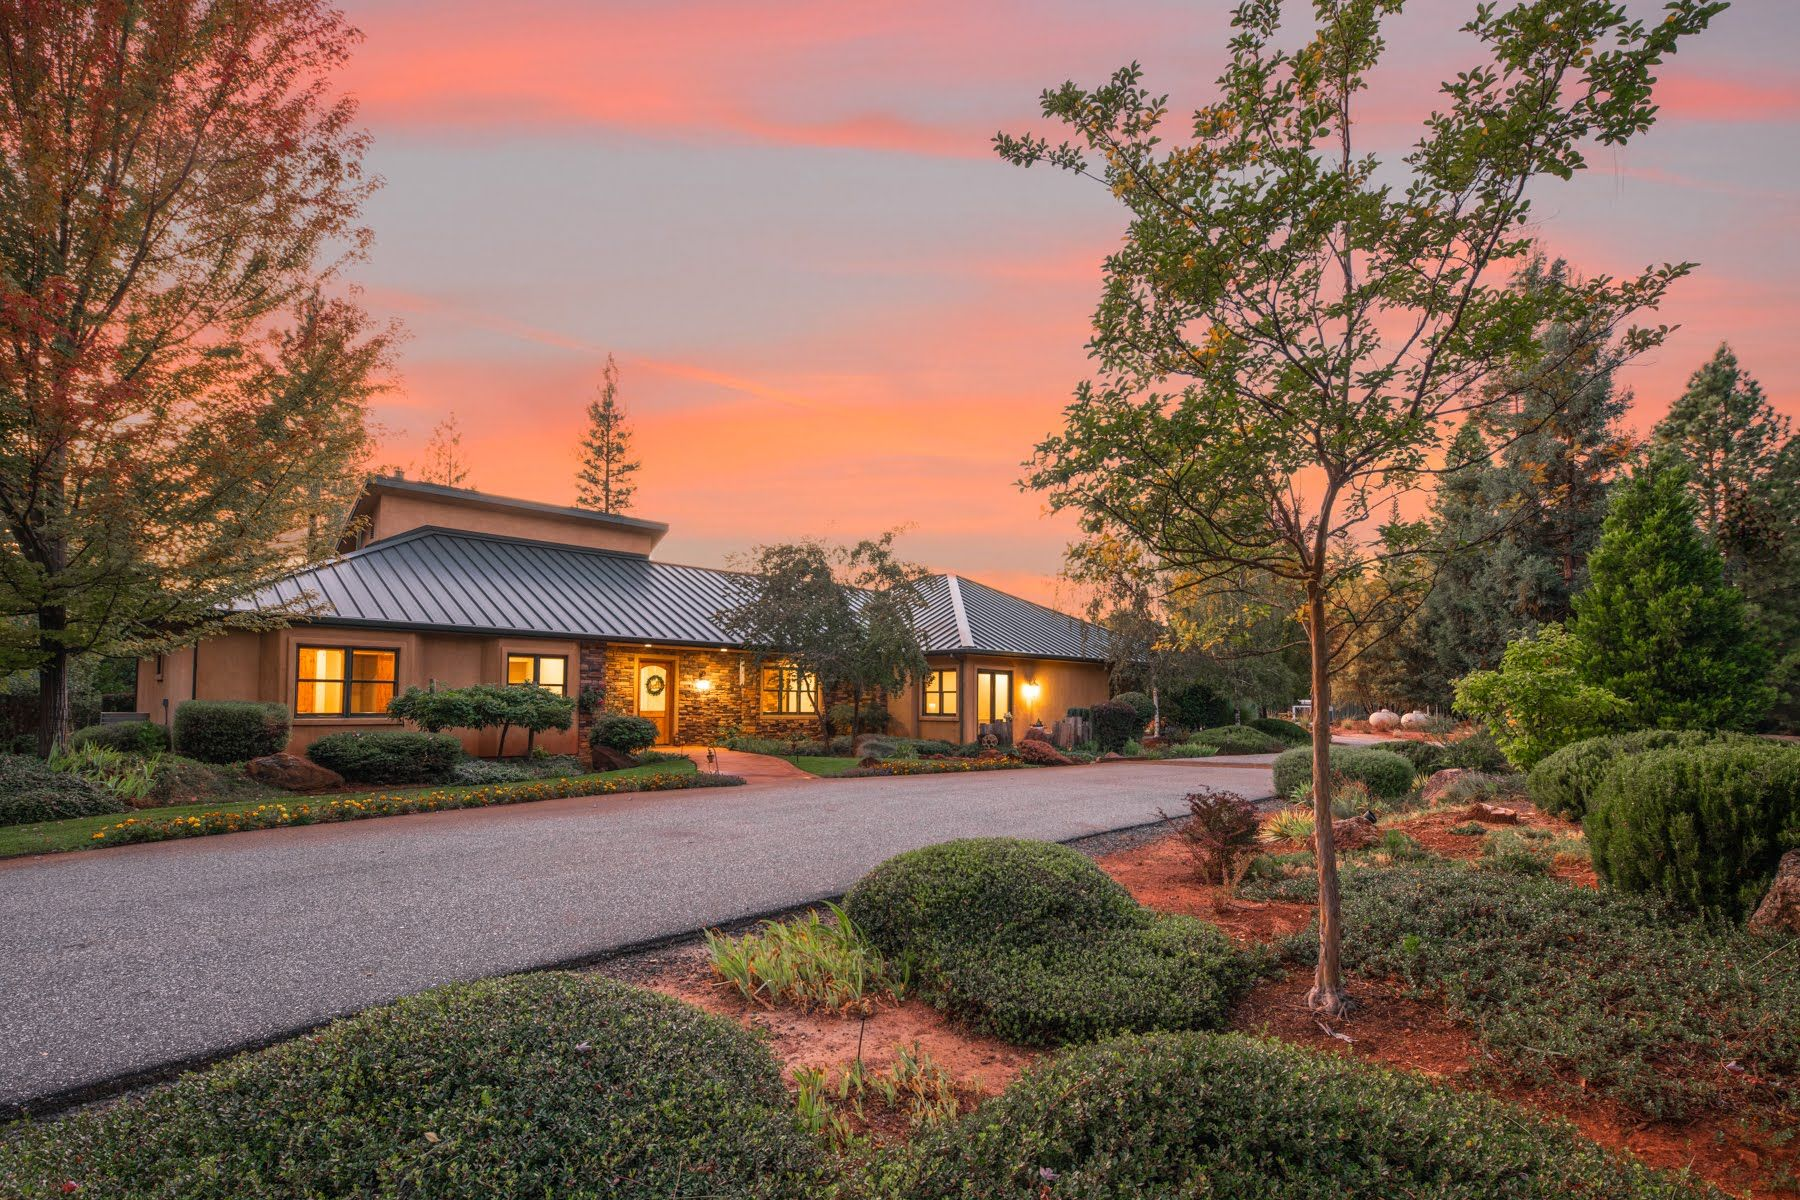 Single Family Homes for Active at Rollins Lake Estate 28555 Rollins Lake Road Colfax, California 95713 United States